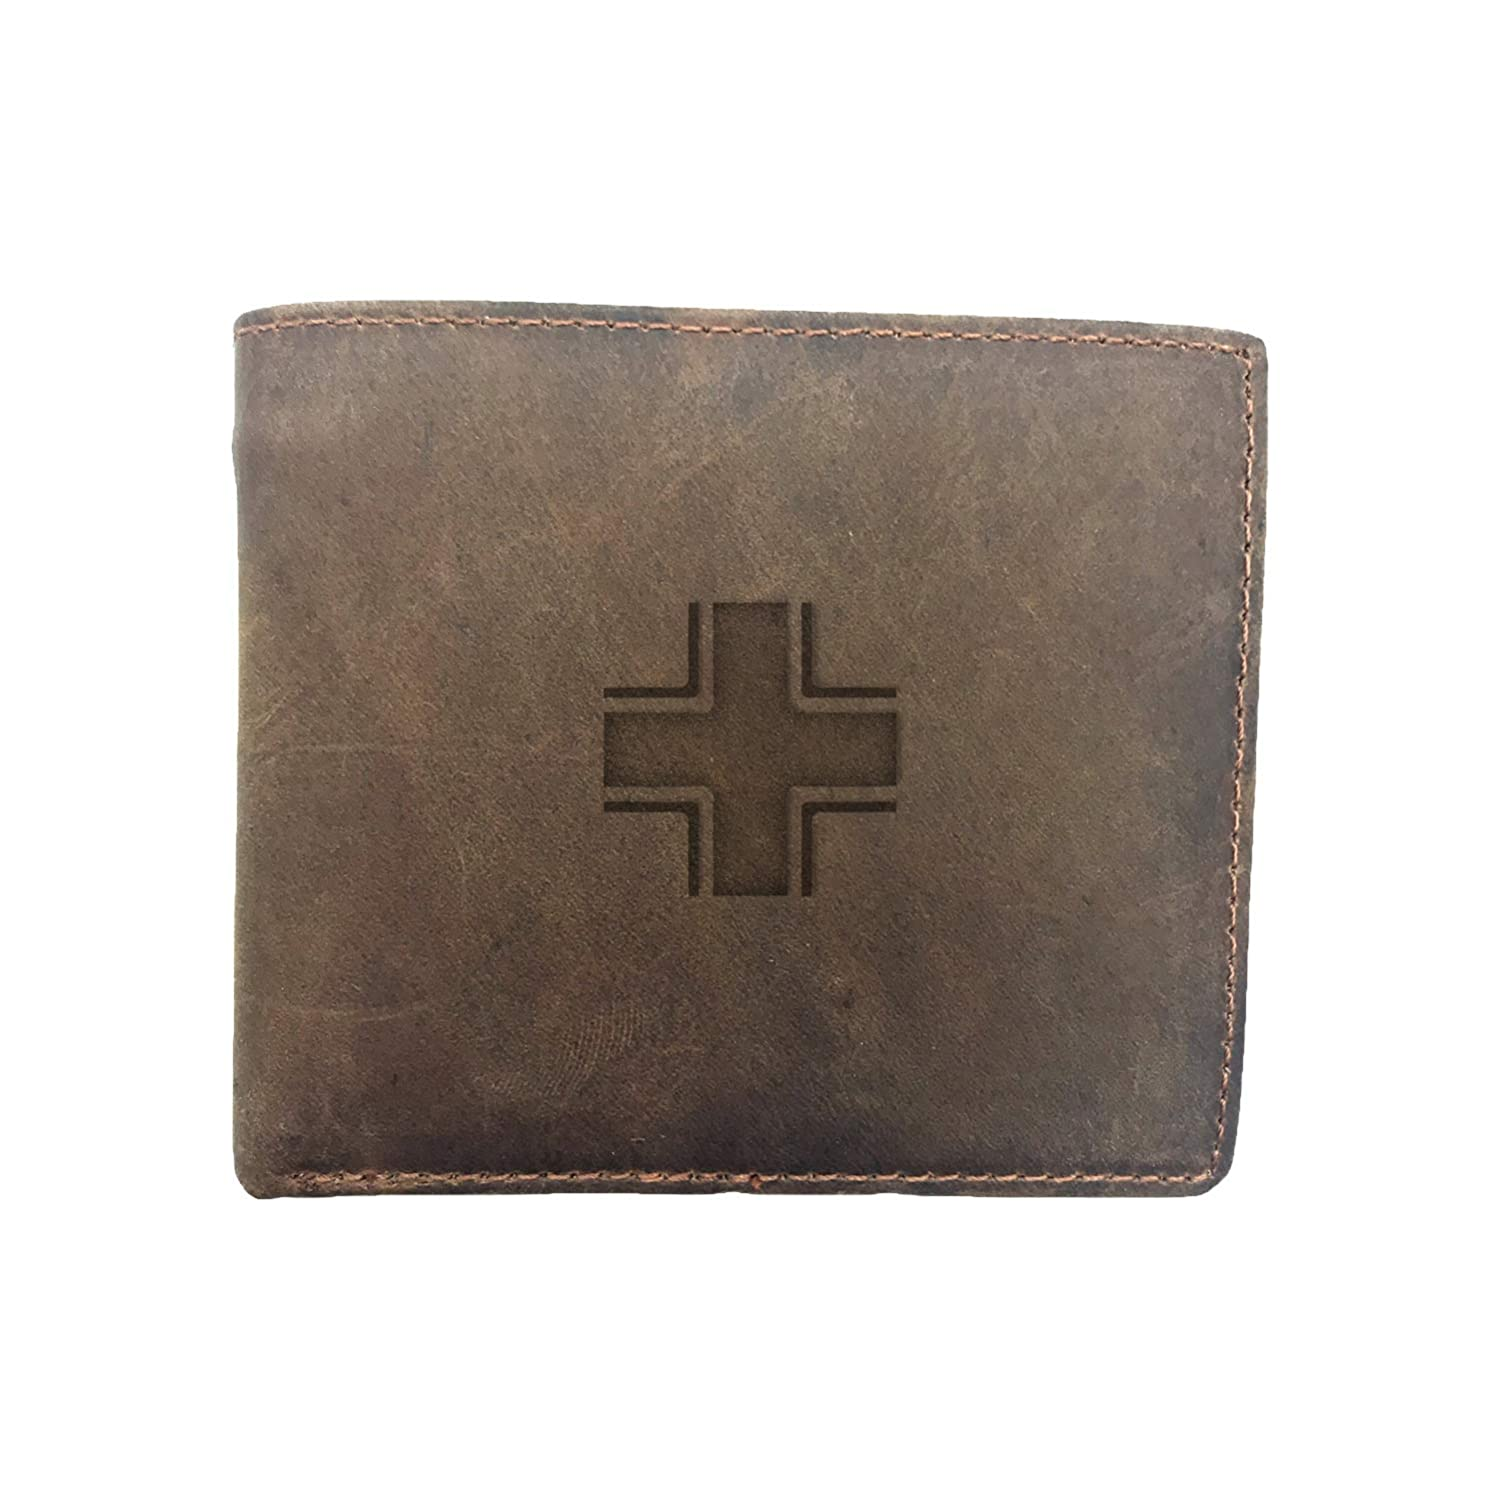 Men - Premium Full Grain Leather Bi-Fold Us Army German Luftwaffe Military Aircraft Ww2 Money Clip Unisex Card Holder Handmade Women Engraved Milk Chocolate